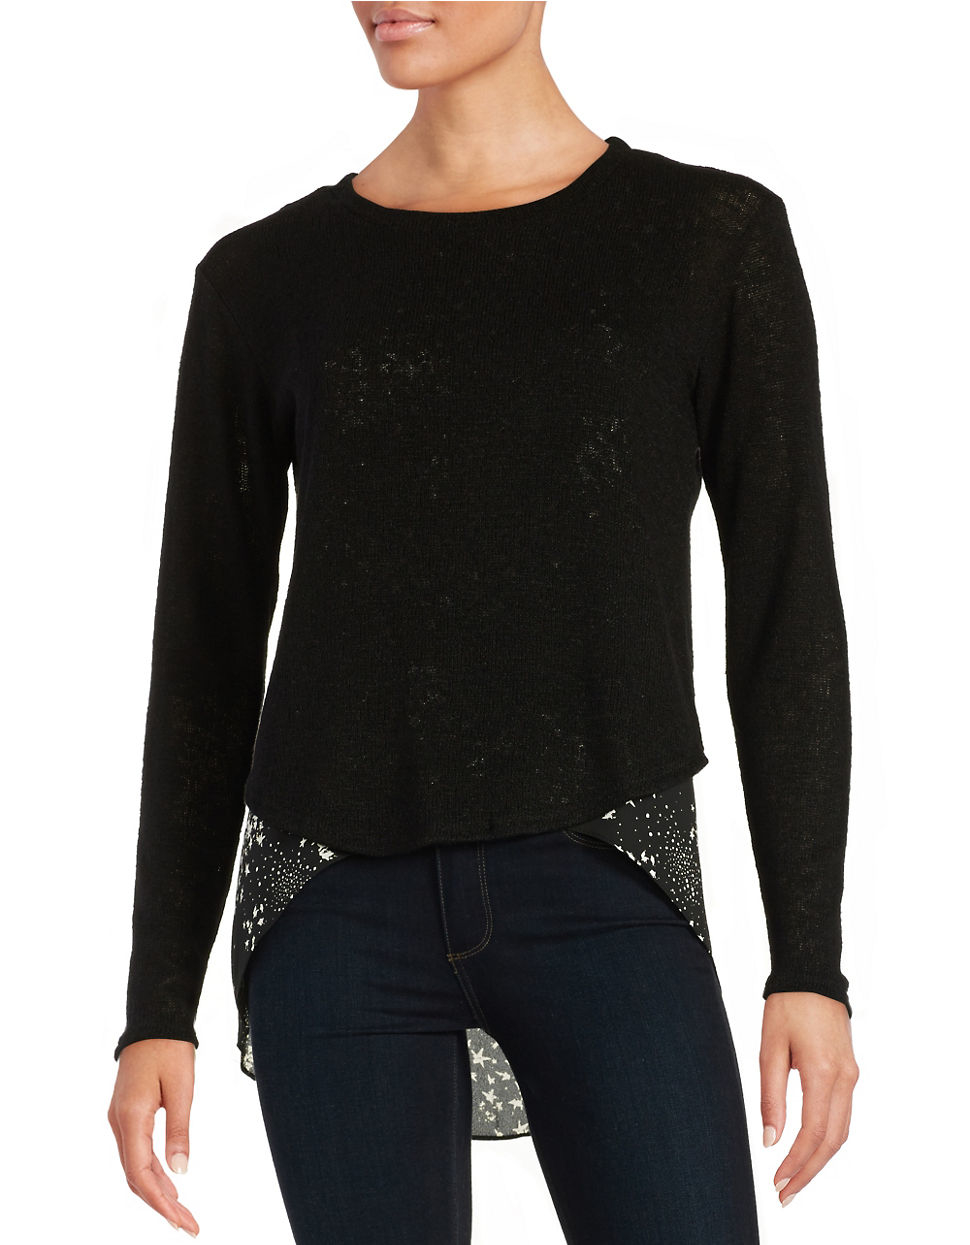 Lord Taylor Layered Effect Sweater In Black Lyst